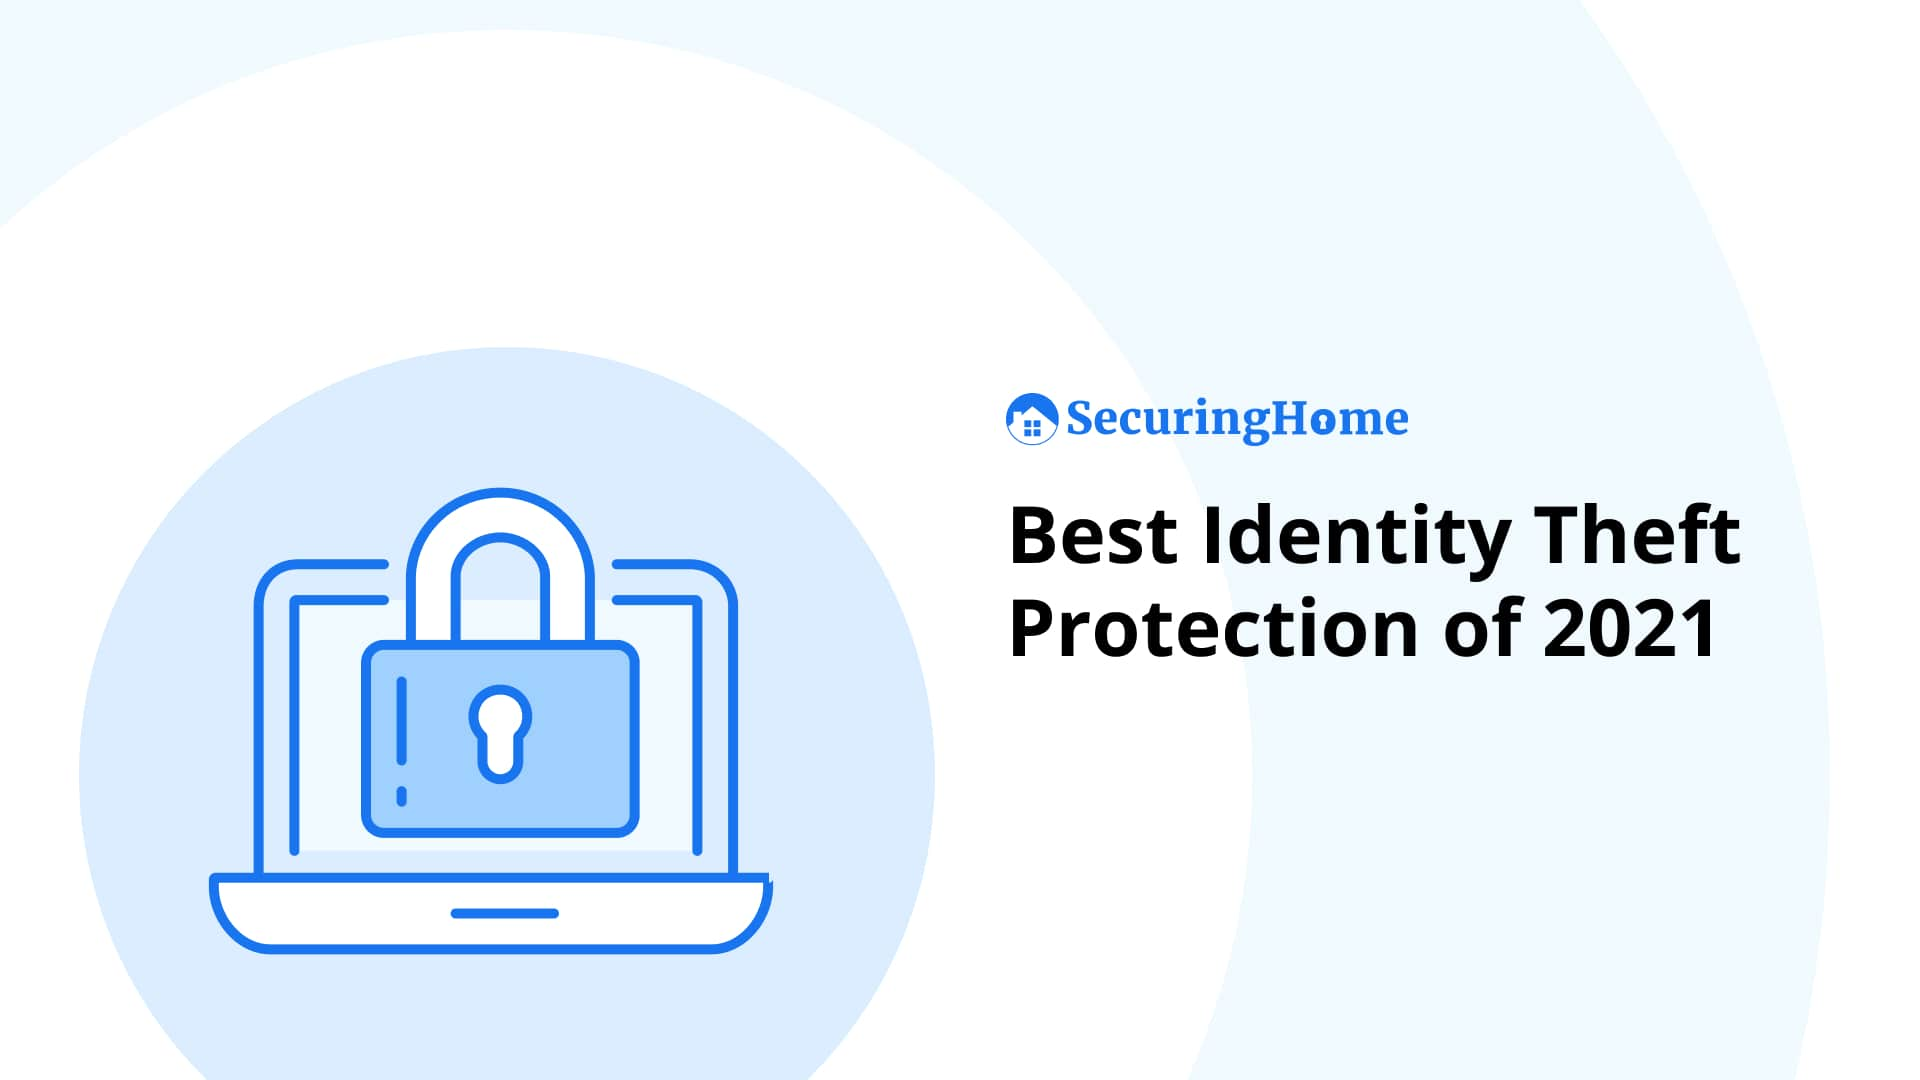 Top 10 Best Identity Theft Protection of 2021